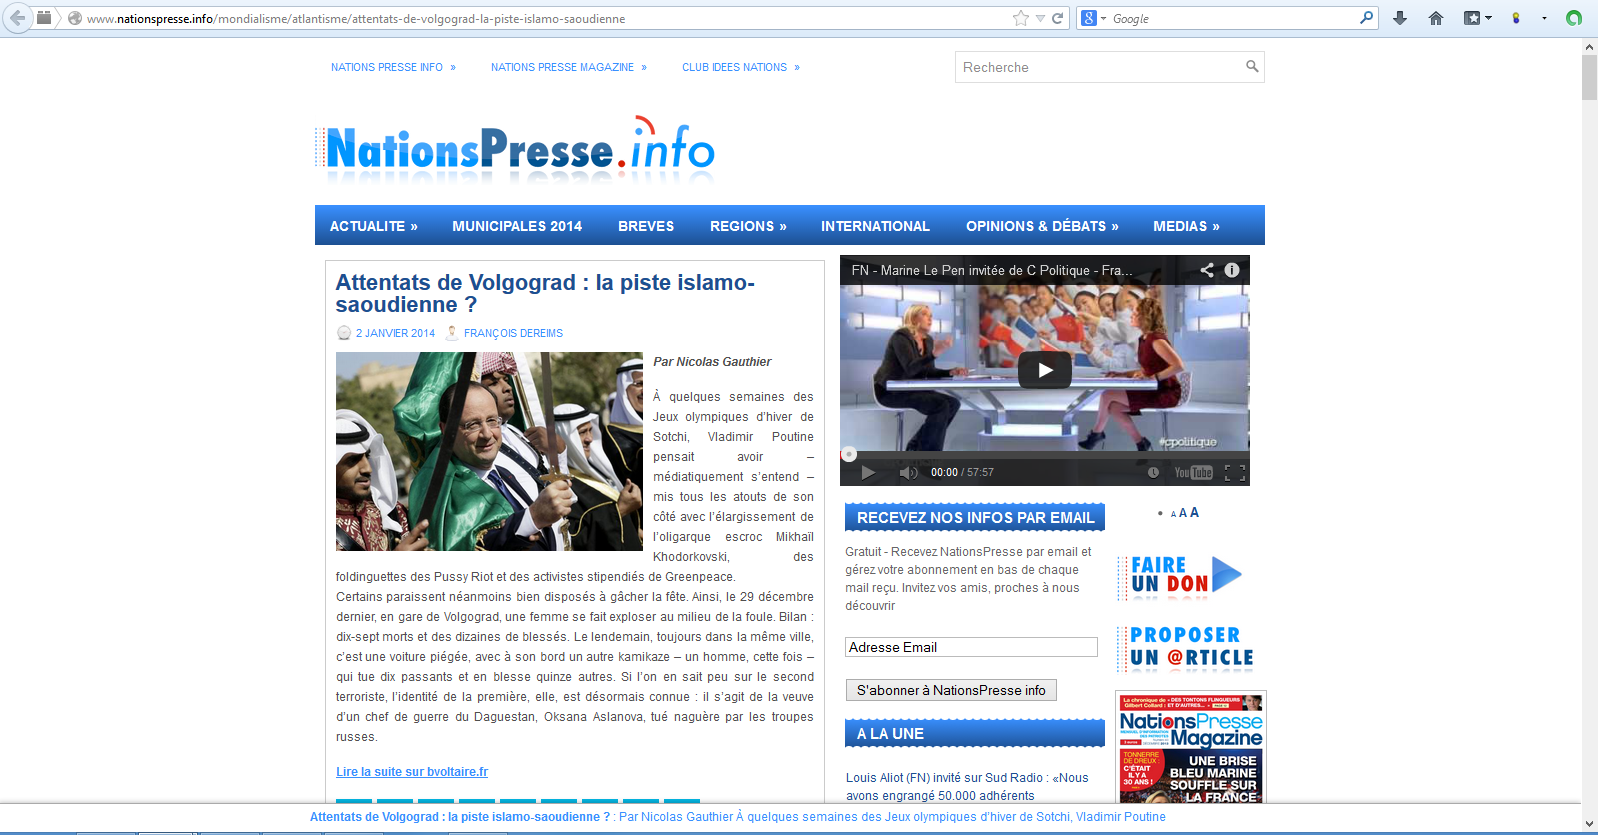 Nationspresse-Attentat-islamiste-Pussy-riot-et-Hollande